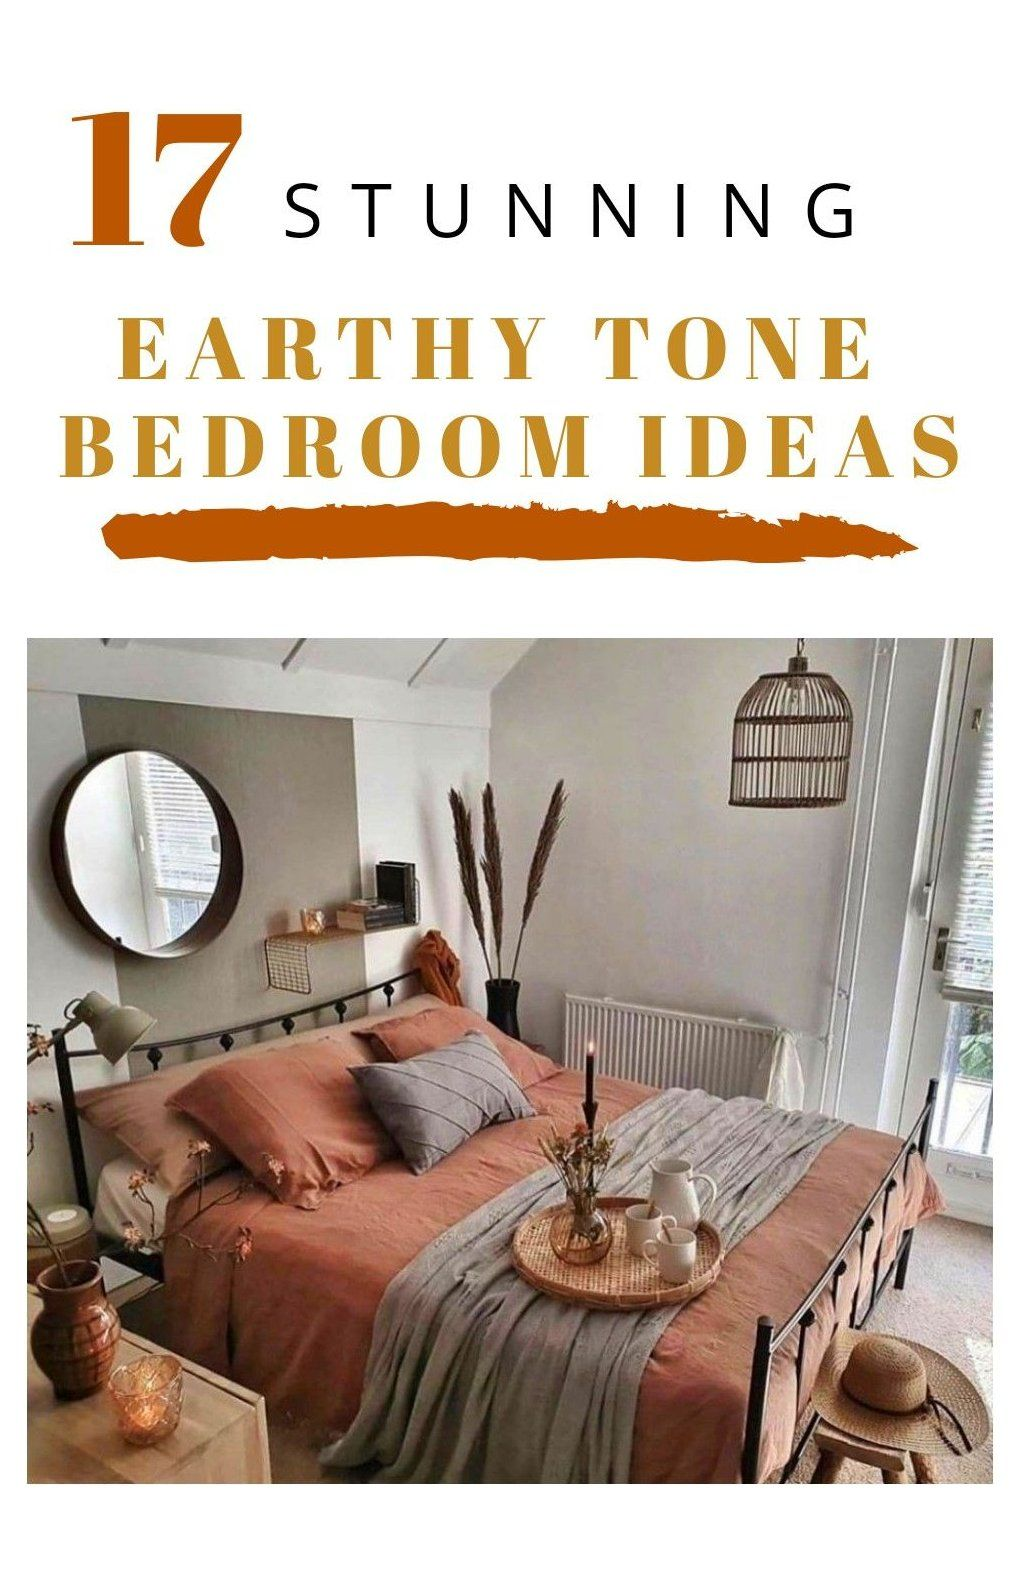 Stunning Earthy Tone Bedroom Ideas Simple Colorful Home Decor Simplecolorfulhomedecor Bring Th Earth Tones Bedroom Decor Earthy Home Decor Warm Home Decor